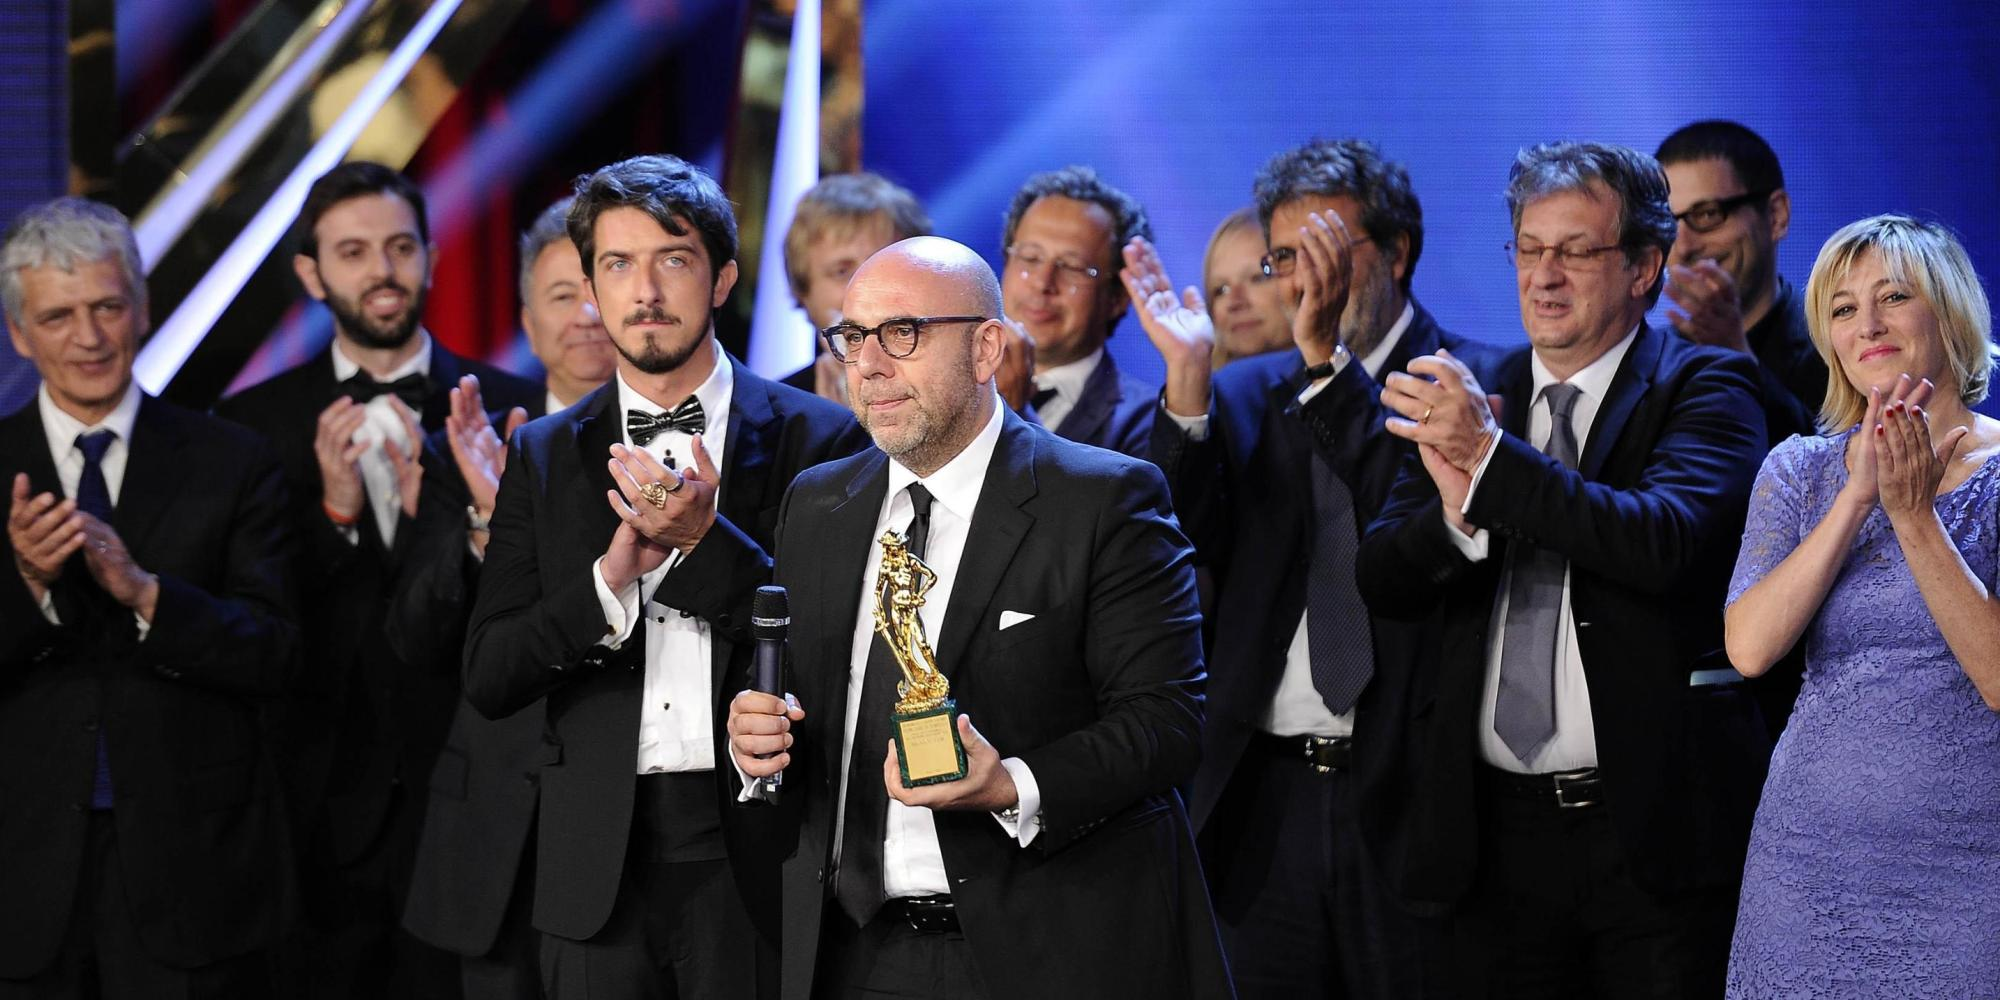 Cinema: David di Donatello Award